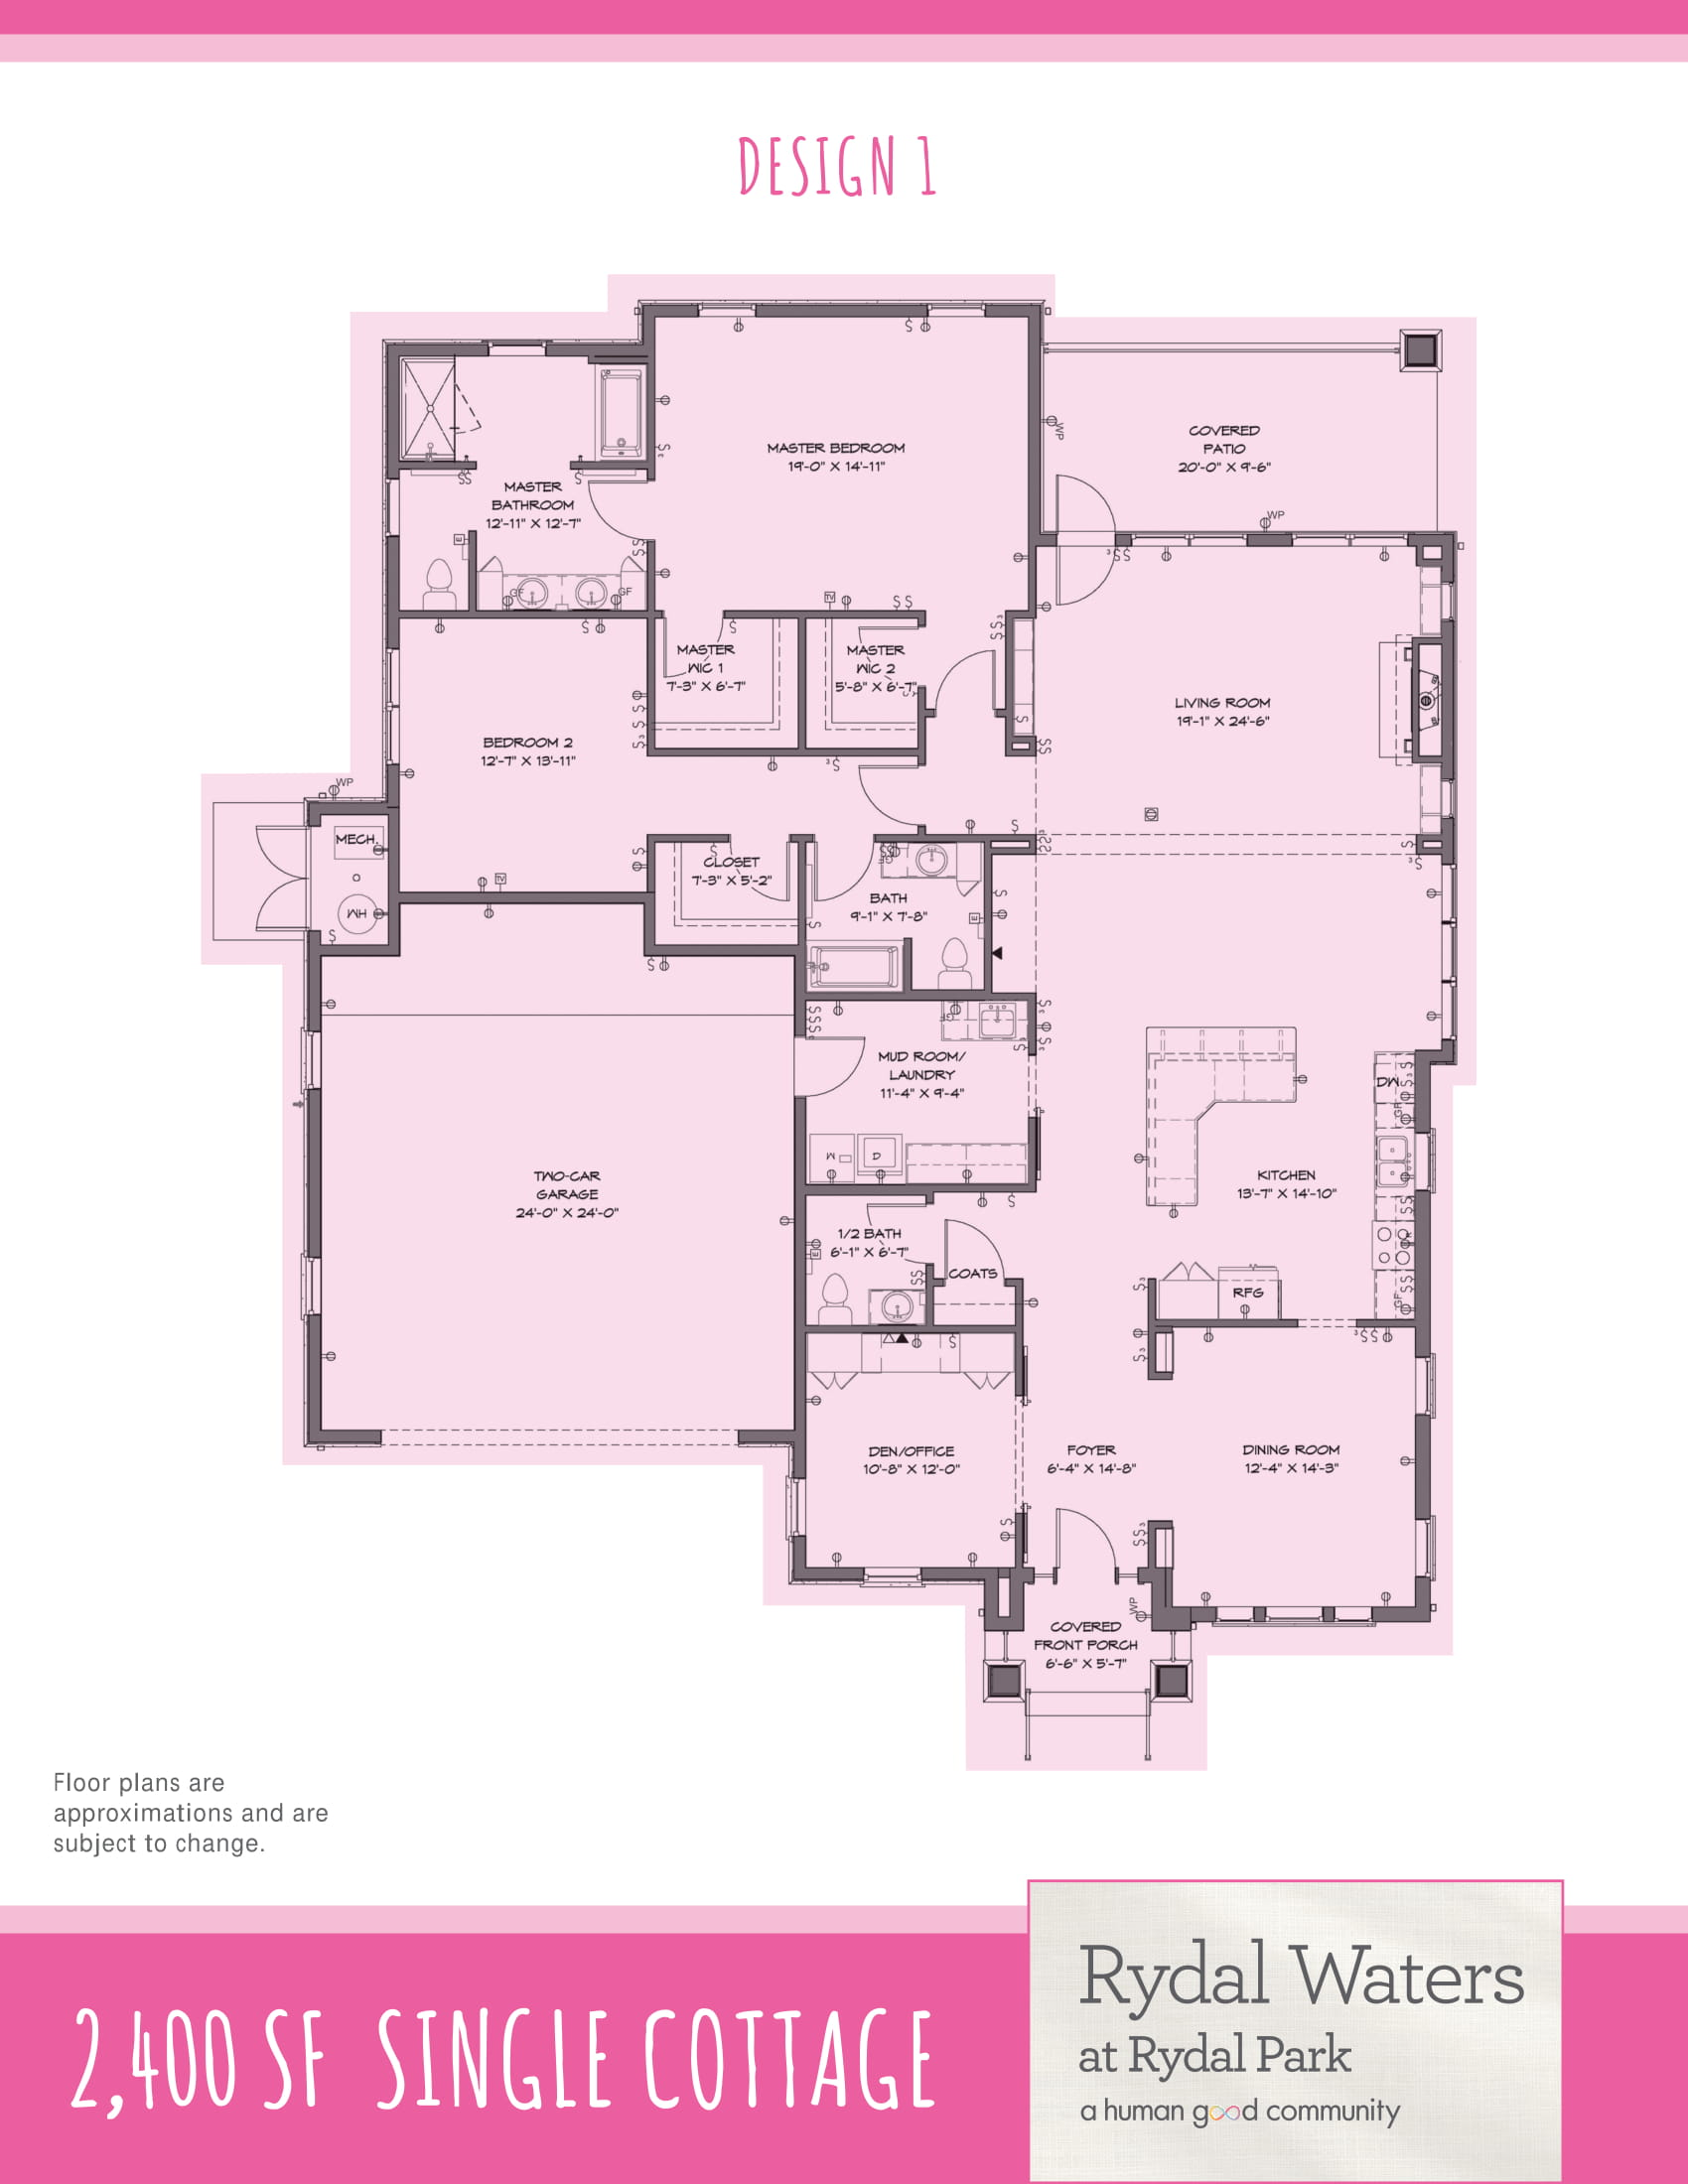 rydal-waters-cottage-2400_Design1-1